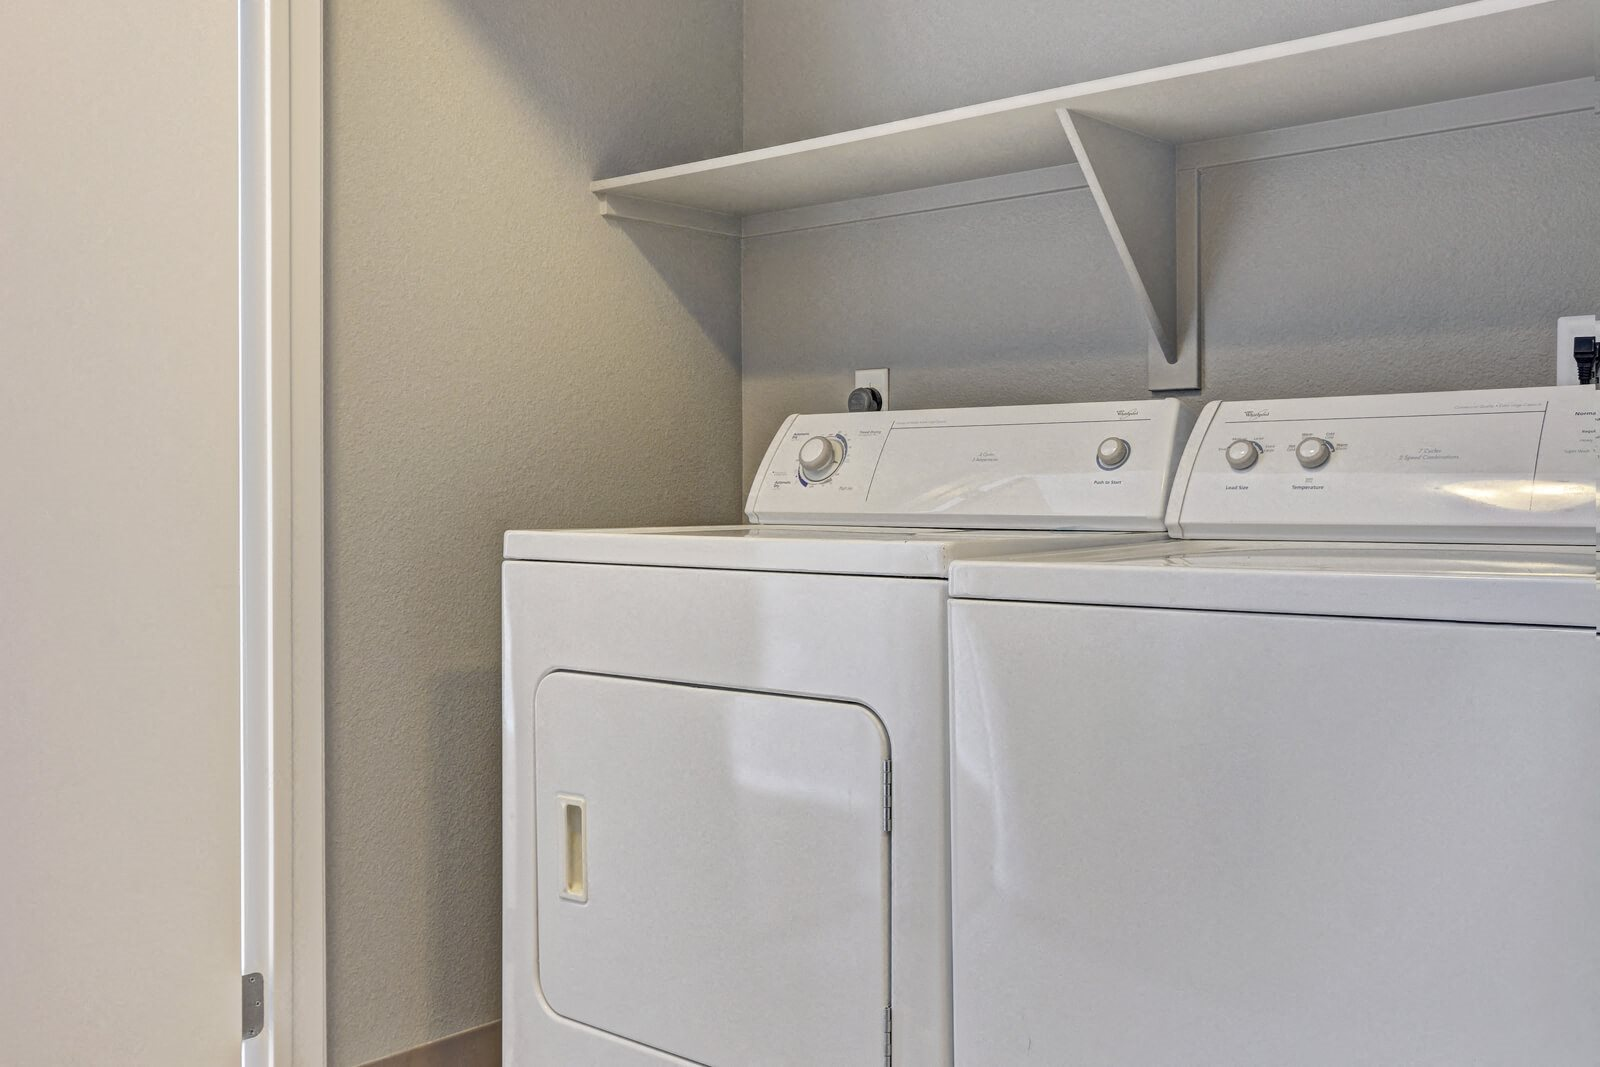 Full-Size, In-Unit Washer/Dryer at Terraces at Paseo Colorado, Pasadena, California